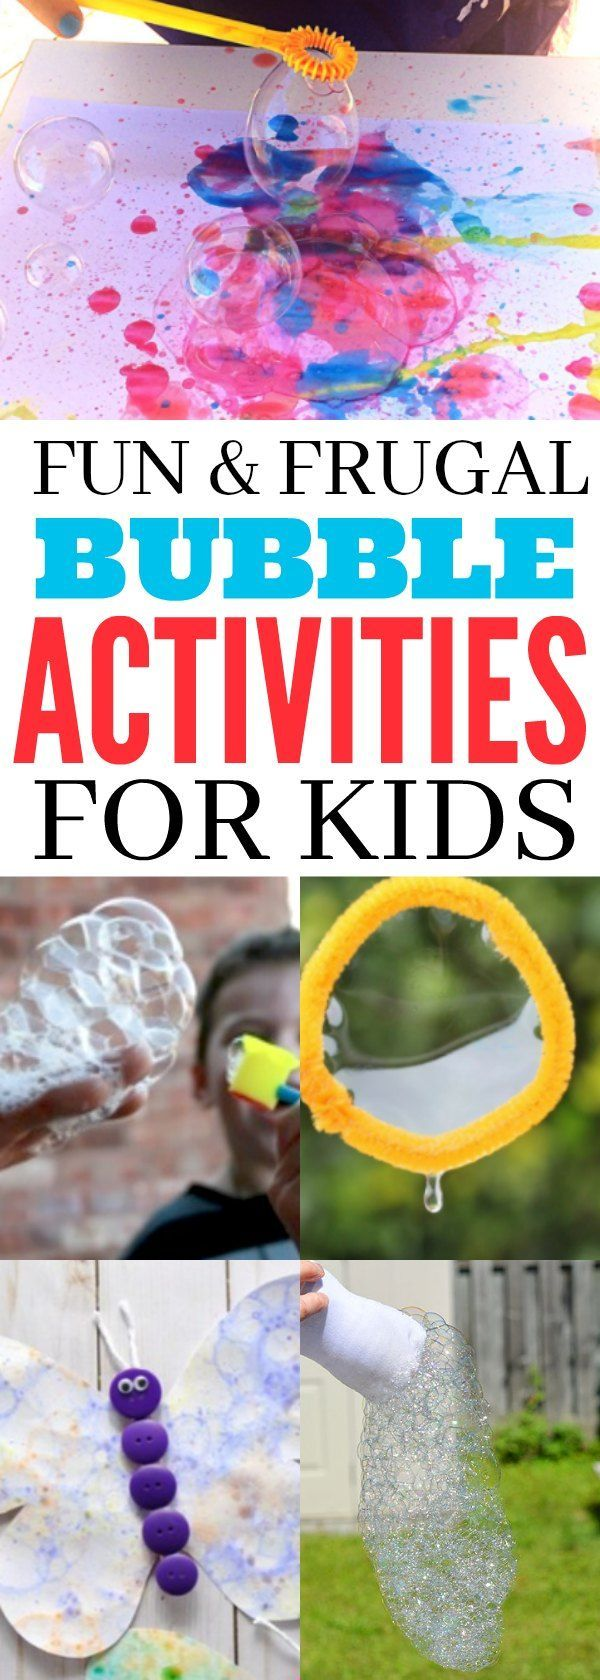 21953 best diy crafts inspirations images on pinterest diy bubble activities for kids 12 bubble activities for hours of fun gamestrikefo Image collections